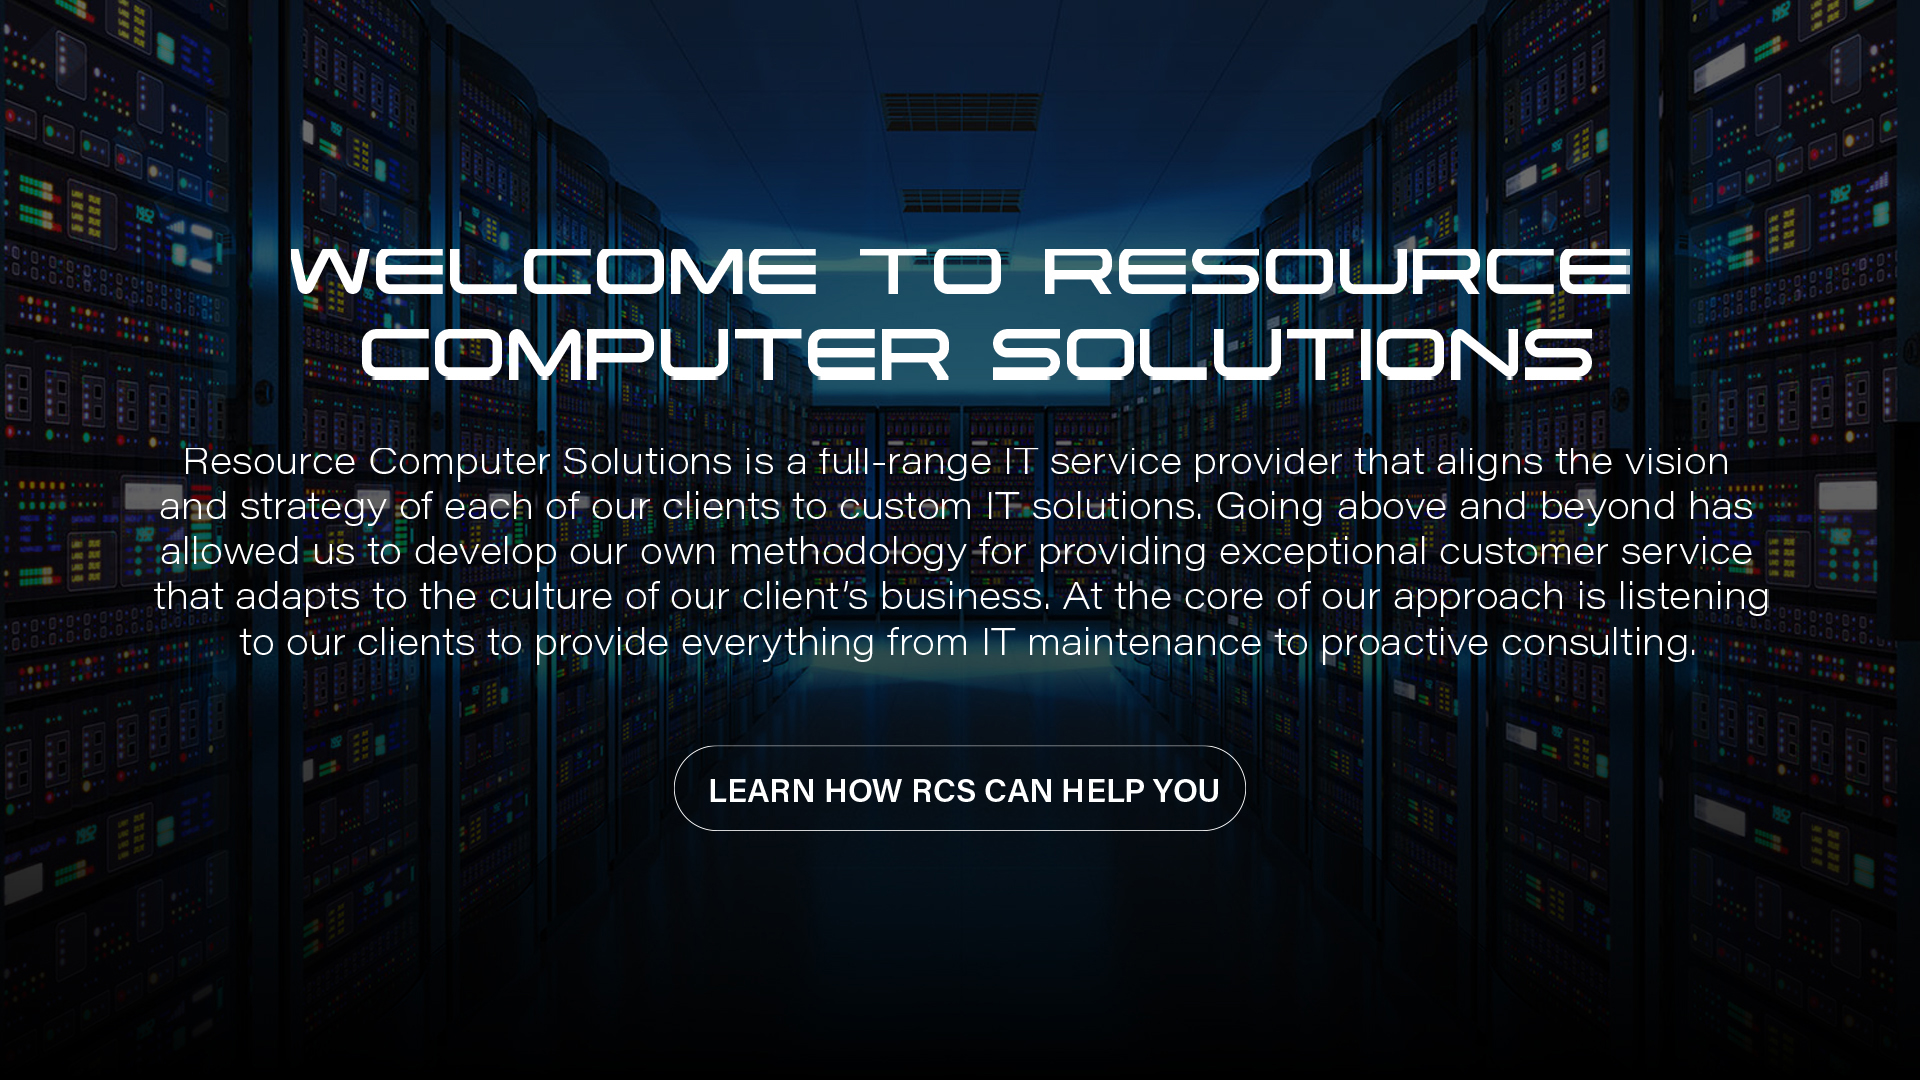 Welcome to Resource Computer Solutions | Resource Computer Solutions is a full-range-IT service provider that aligns the vision and strategy of each of our clients to custom IT solutions. Going above and beyond has allowed us to develop our methodology for providing exceptional customer service that adapts to the culture of our client's business. At the core of our approach is listening to our clients to provide everything from IT maintenance to proactive consulting.